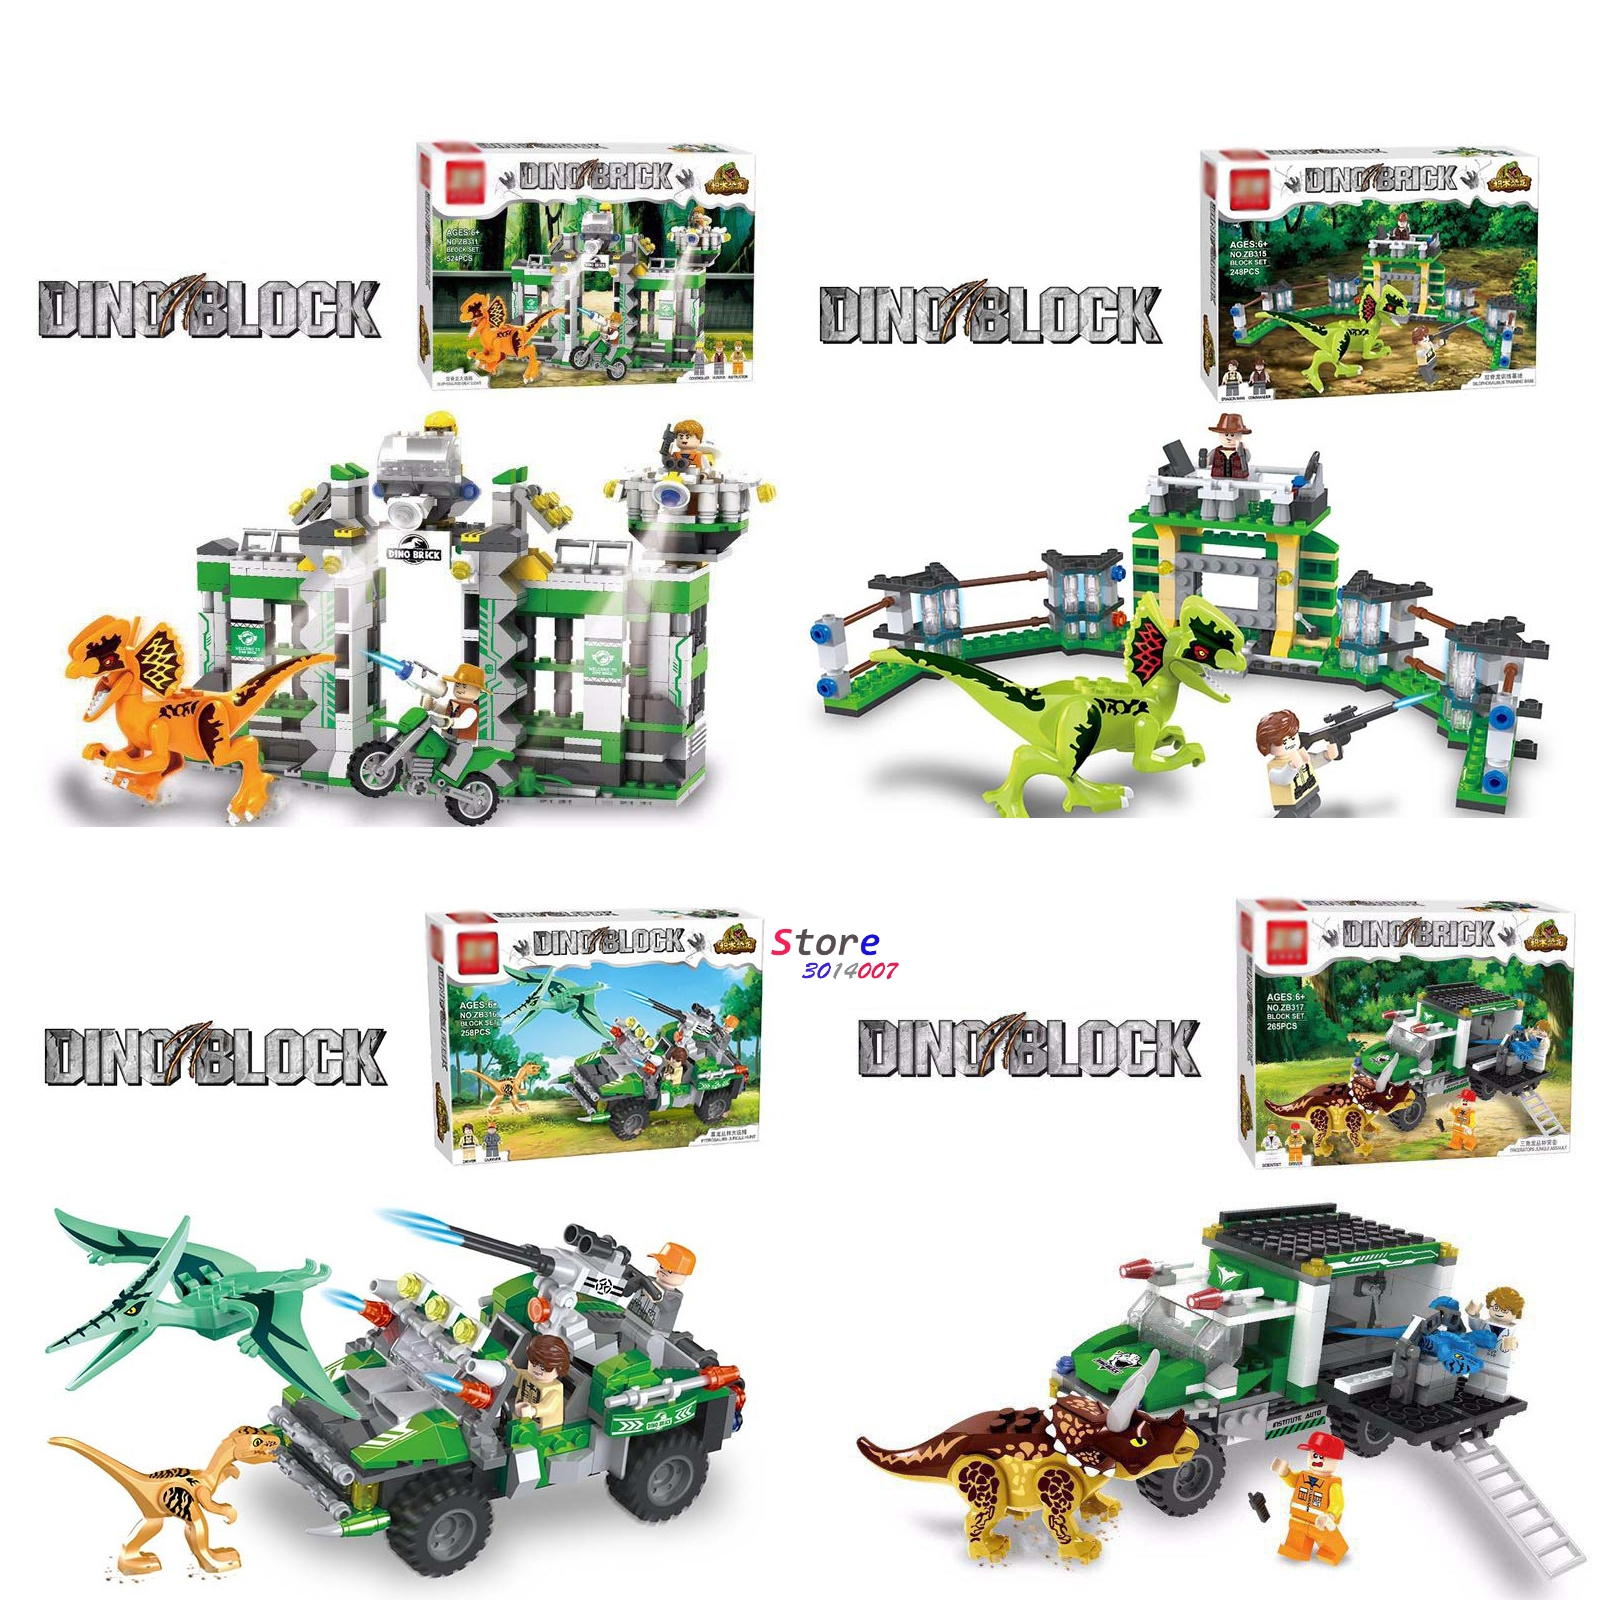 1/Set Jurassic World Tyrannosaurus Building Blocks Dinosaur Dilophosaurus Flee Dinosaur Motorcycle bricks toys for children gift 2 sets jurassic world tyrannosaurus building blocks jurrassic dinosaur figures bricks compatible legoinglys zoo toy for kids